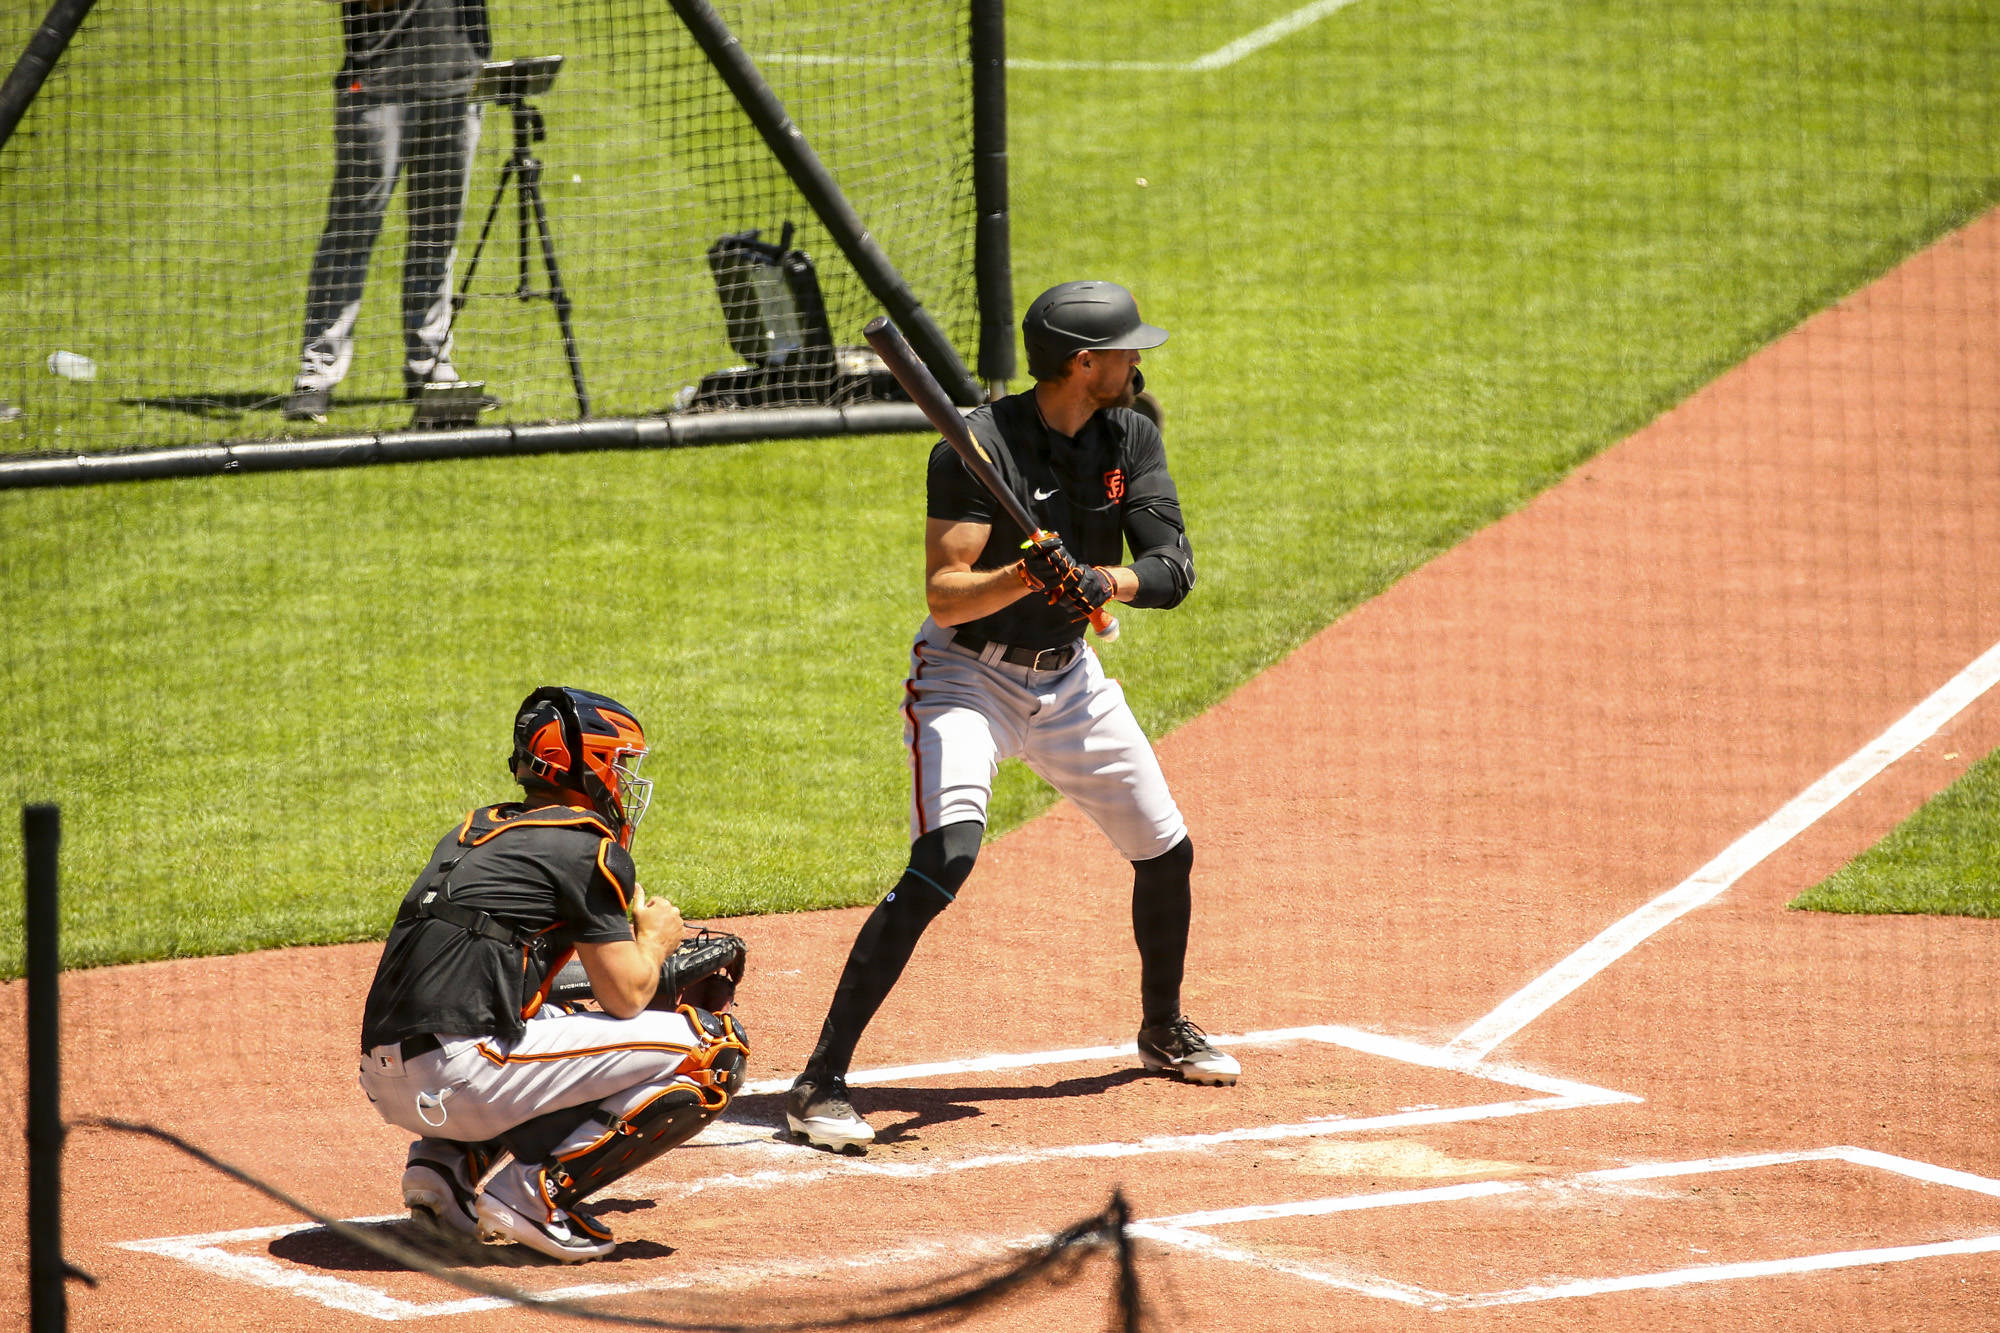 San Francisco Giants right fielder Hunter Pence (8) bats during live batting practice with Buster Posey (28) catching during the second day of summer workout at Oracle Park on July 4, 2020 in San Francisco, California. (Chris Victorio | Special to S.F. Examiner)